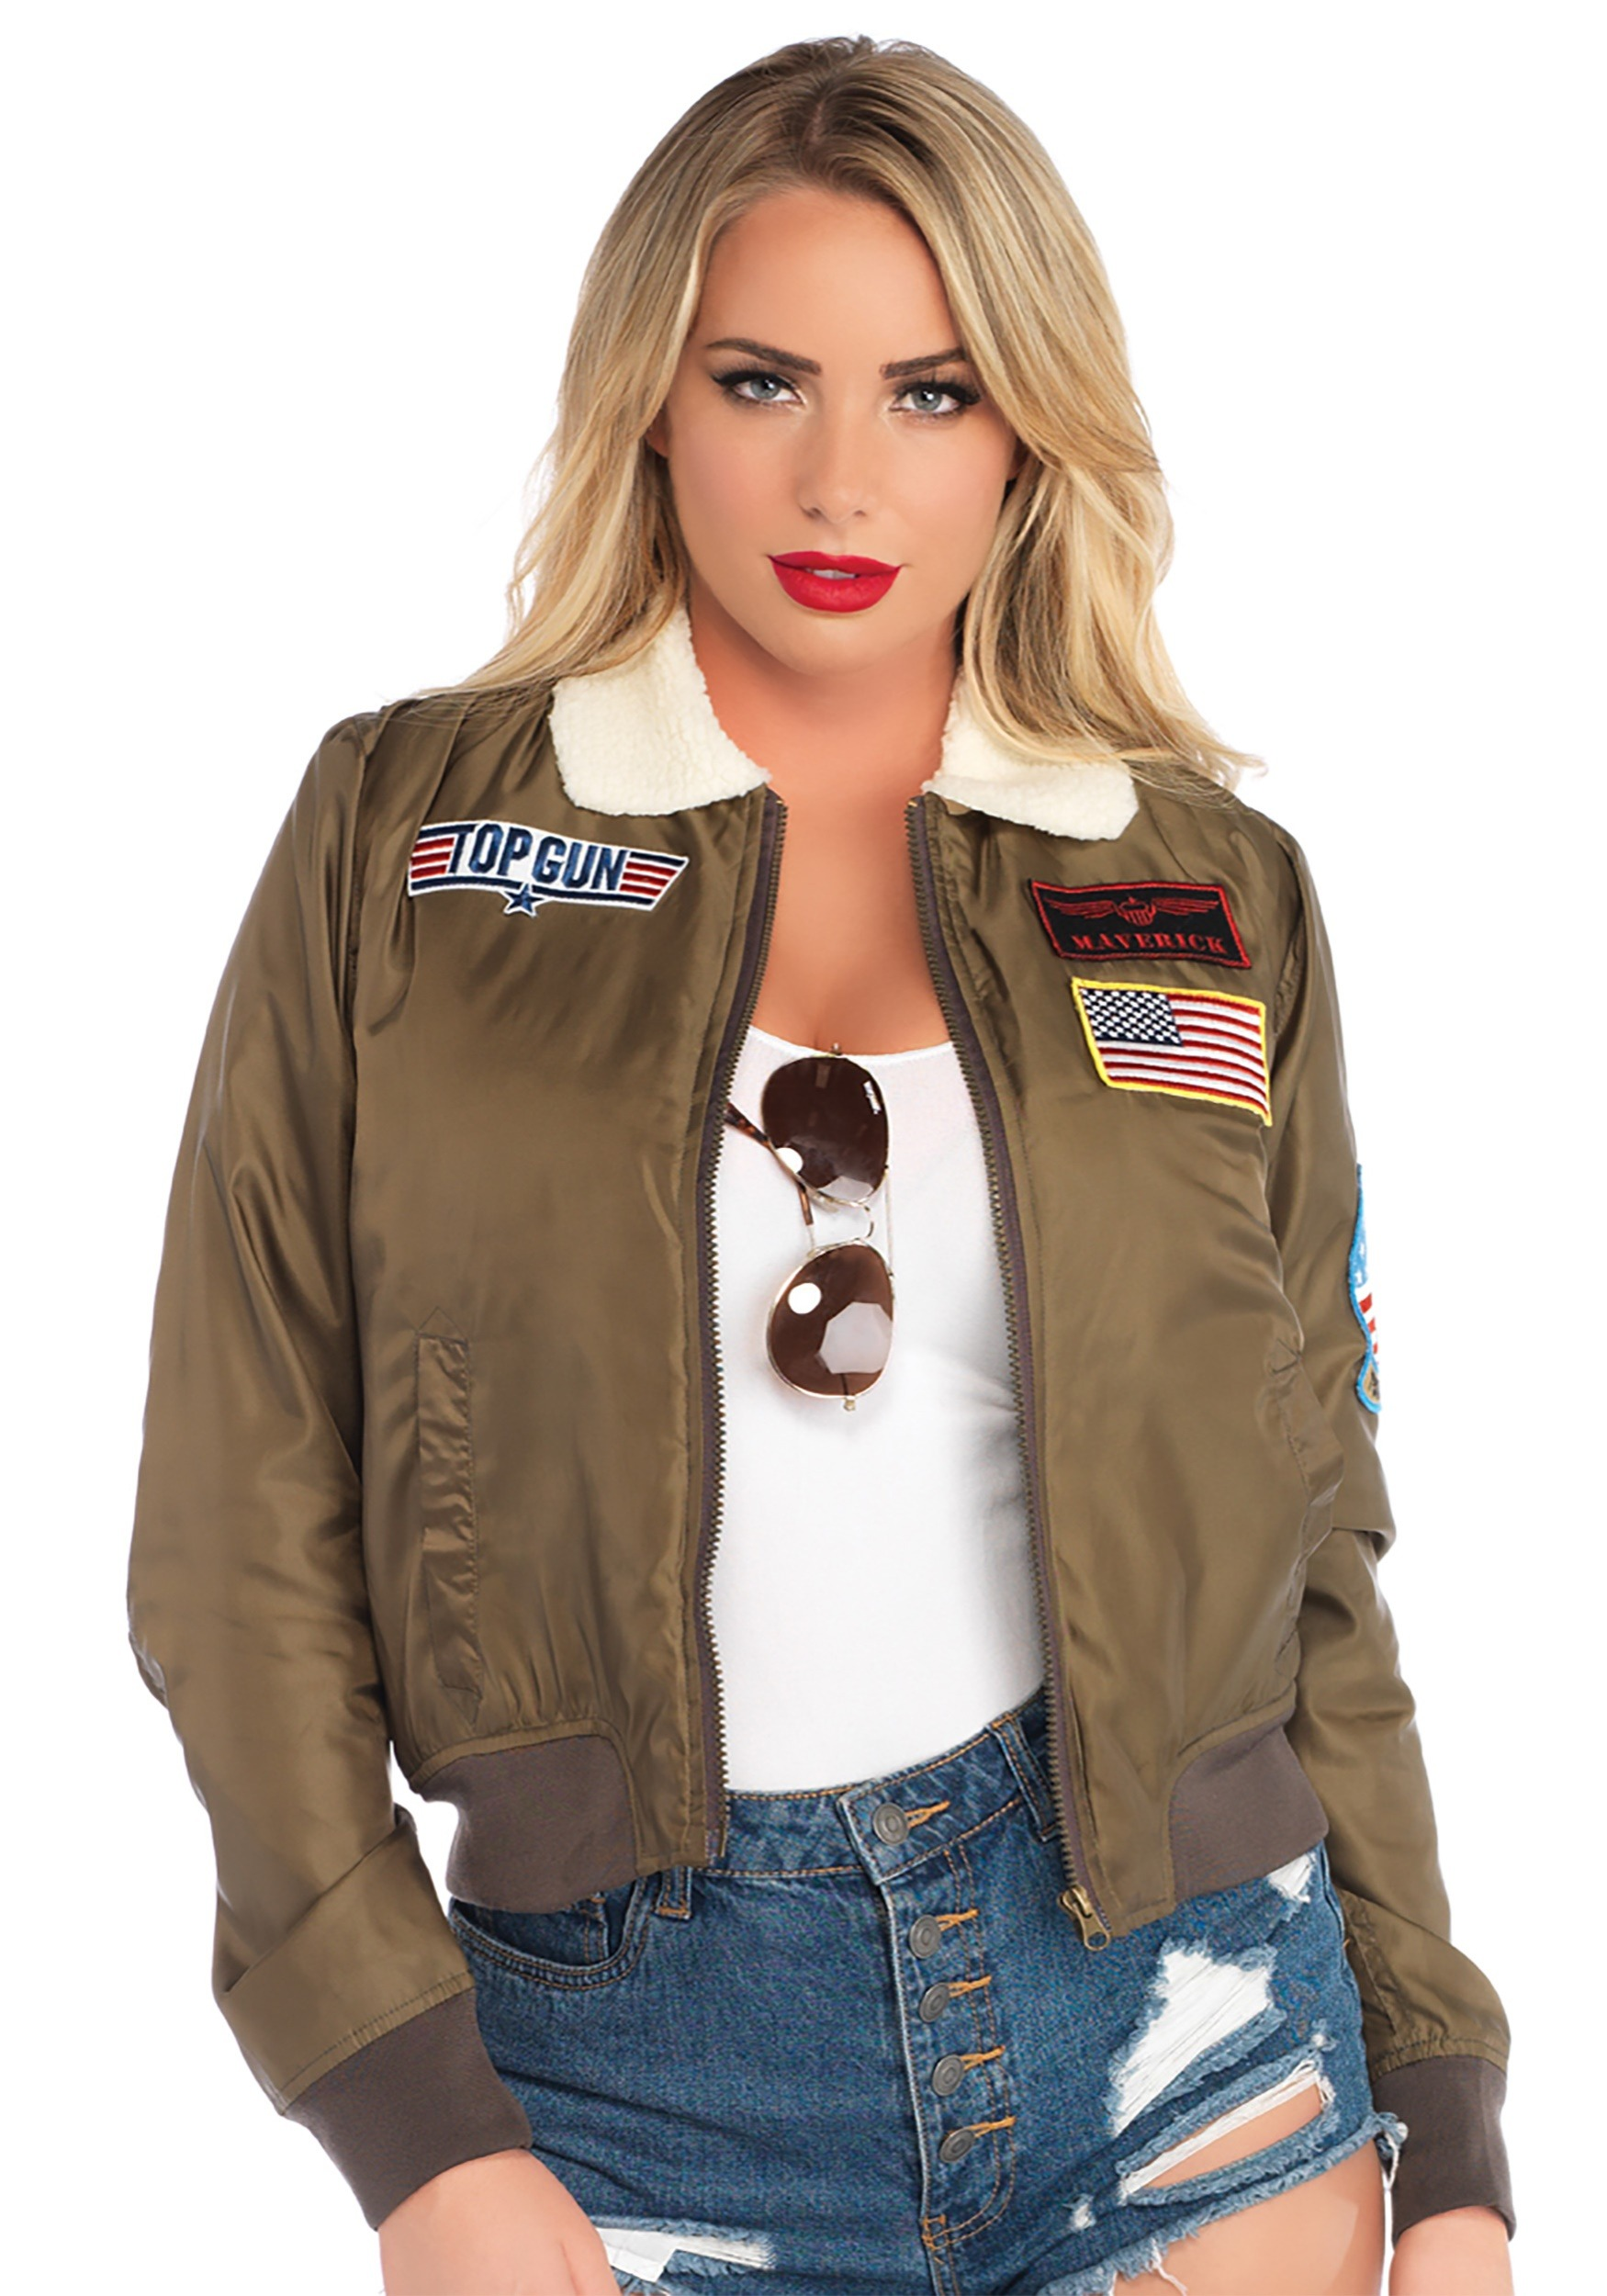 Top Gun Bomber Women S Jacket Costume